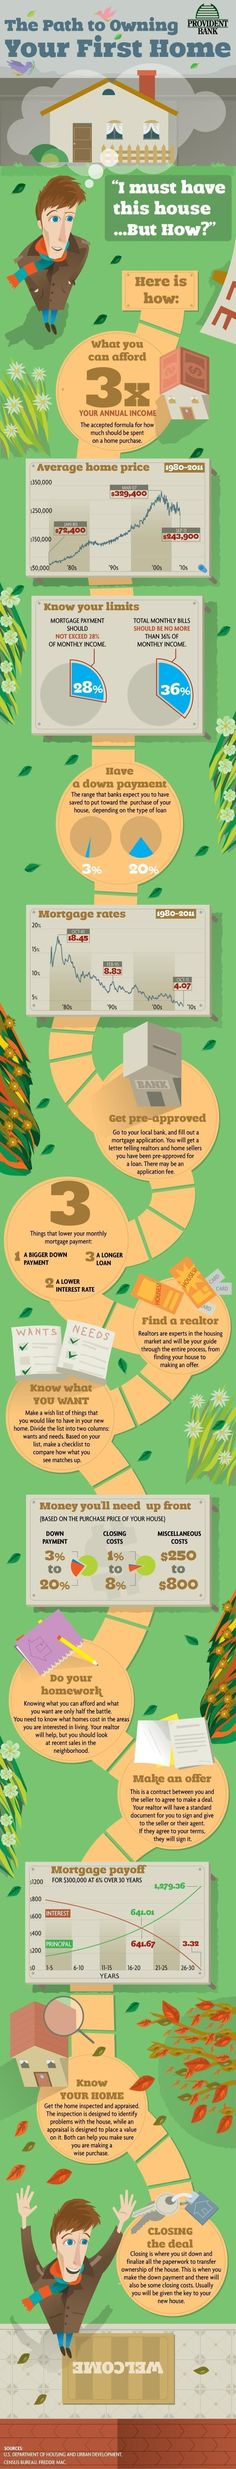 Path to Buying Your First House - This is a nice simple outline of things to think about when planning your first house purchase.  Thanks to the creators of it.